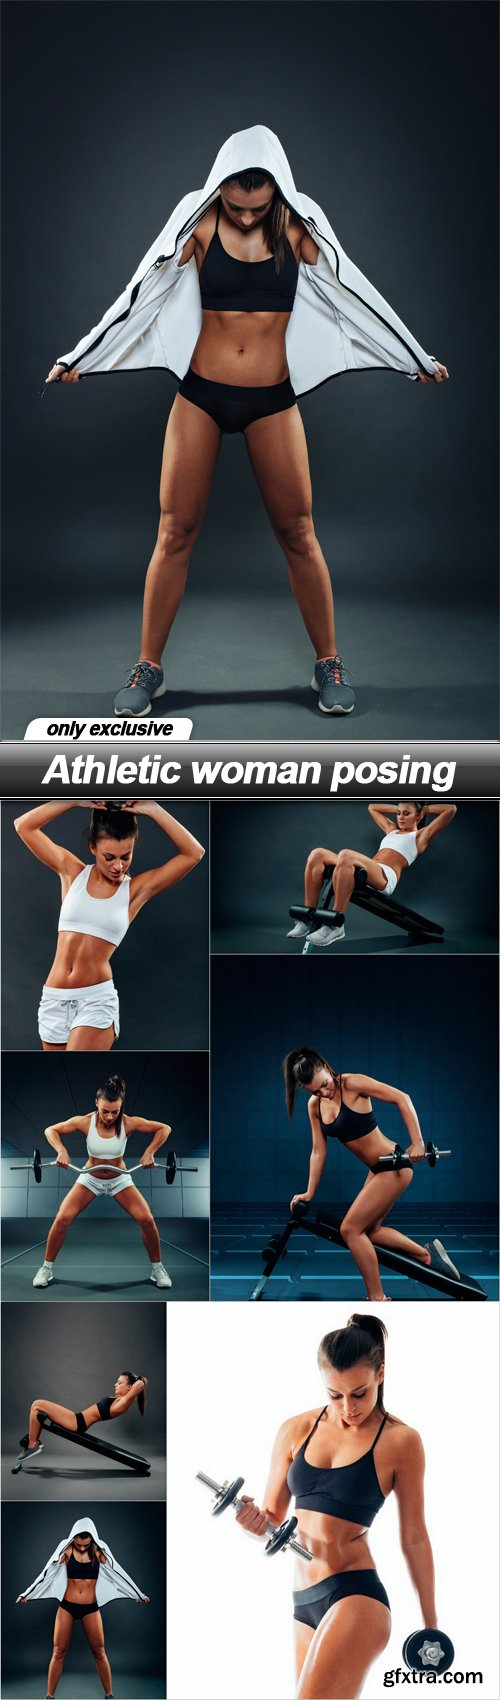 Athletic woman posing - 7 UHQ JPEG